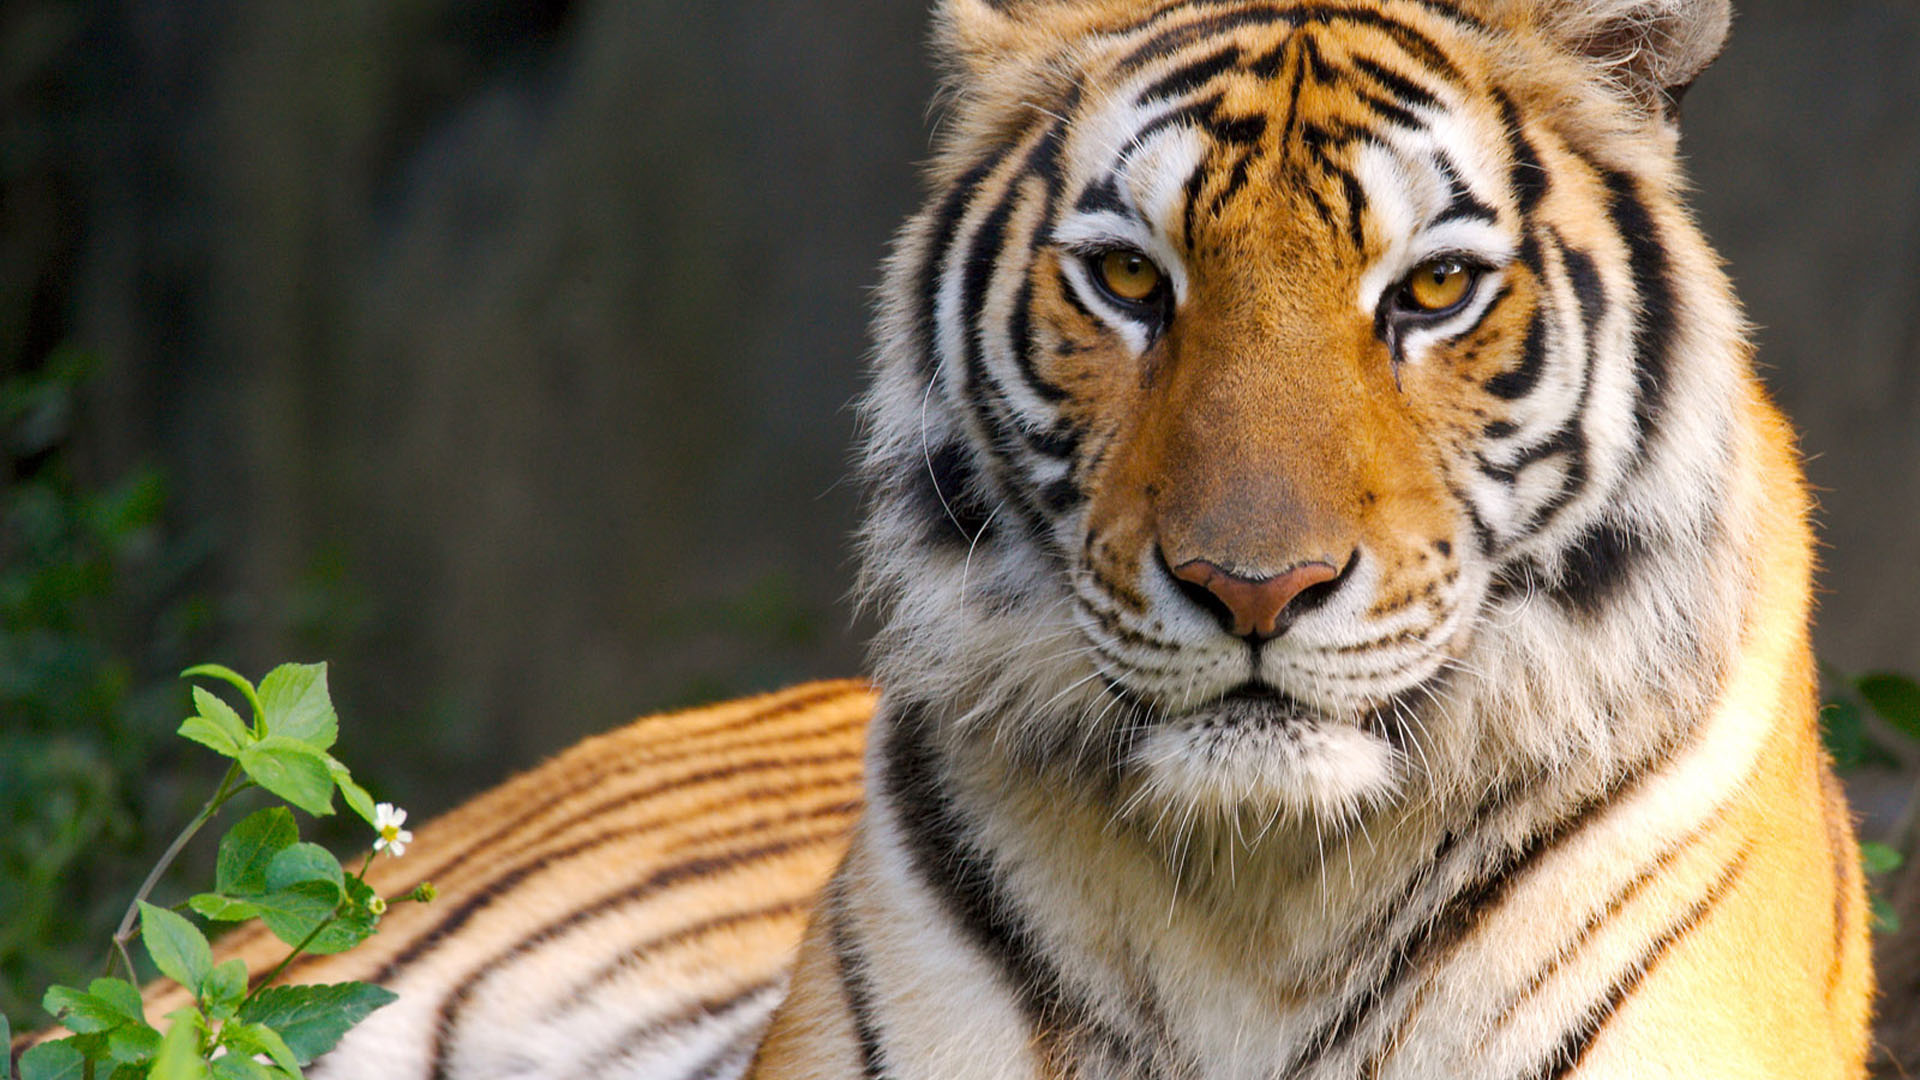 Tiger wallpapers hd free download - Best animal wallpaper download ...